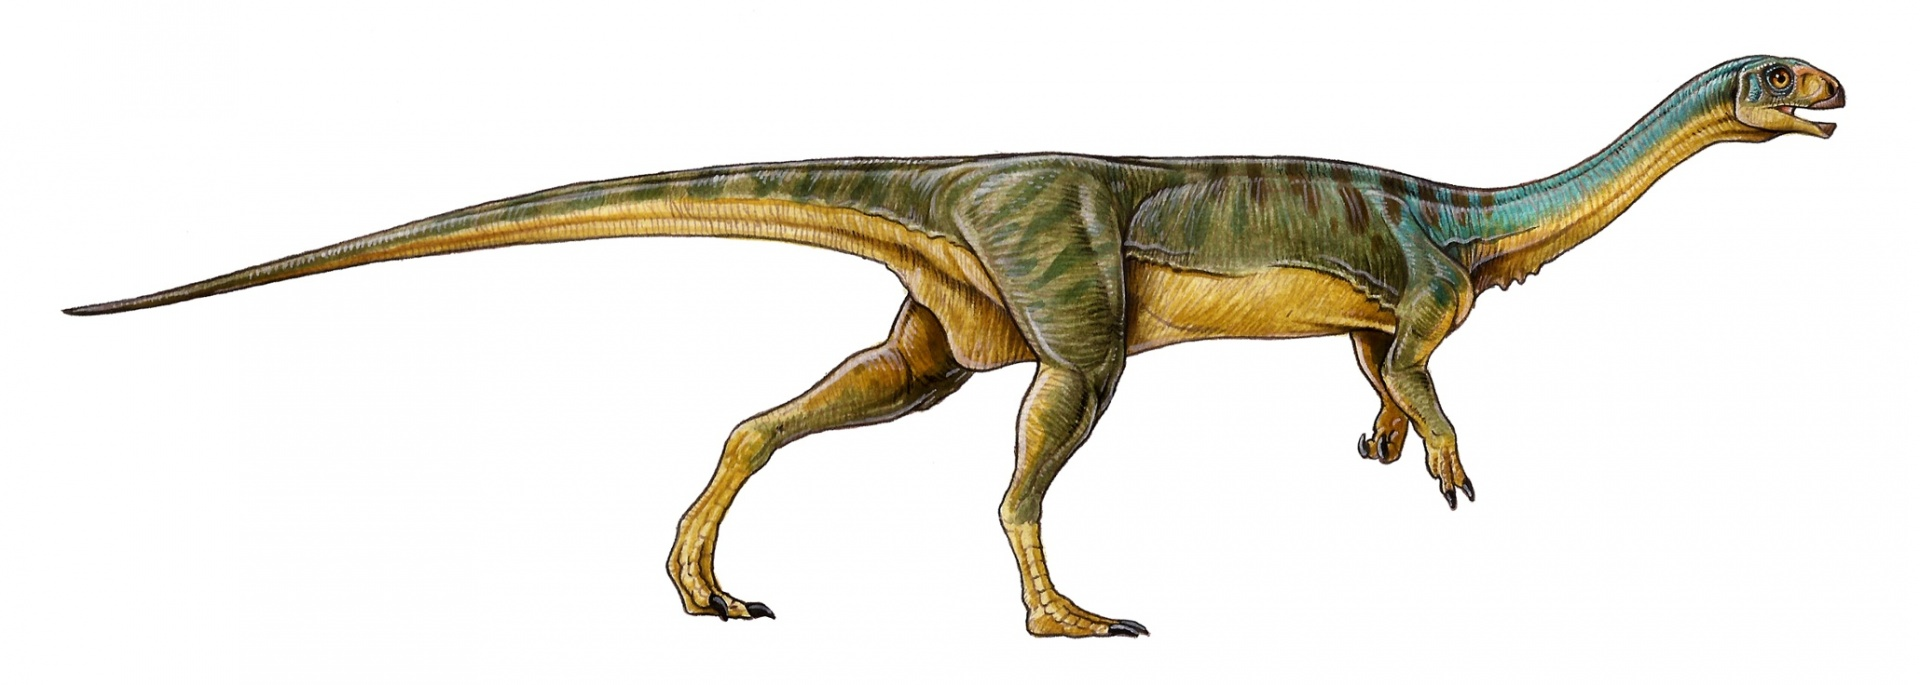 Chilesaurus diegosuarezi has a mixture of features from other prehistoric animals. (Image credit: Gabriel Lio).